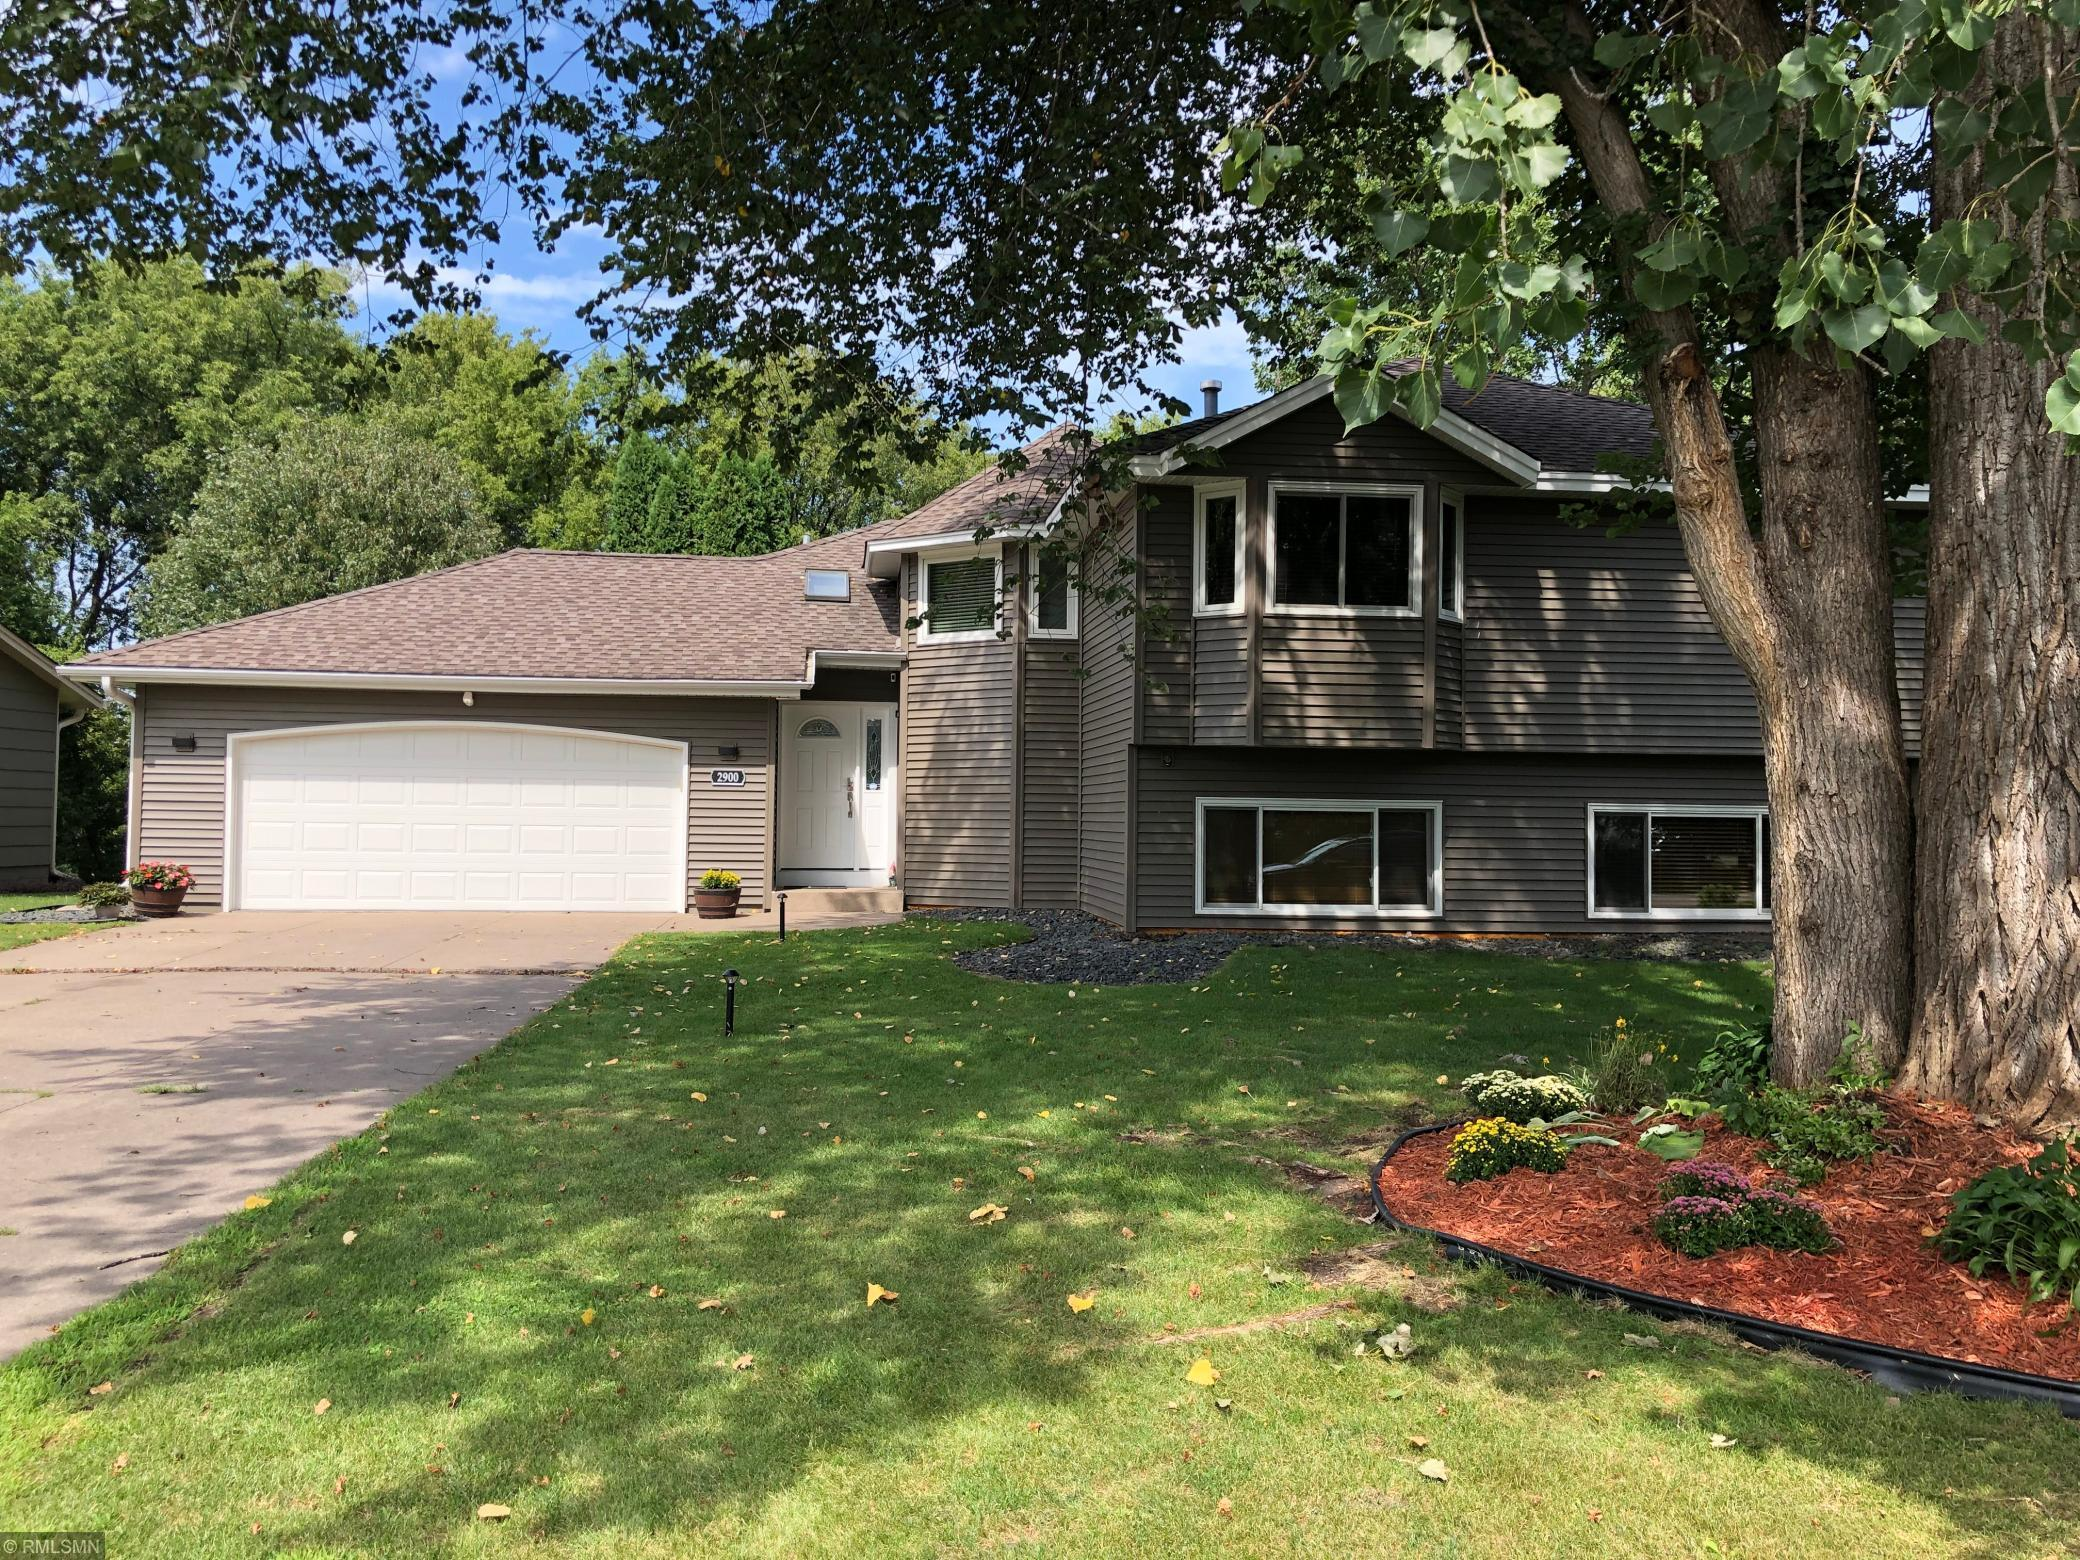 2900 98th Avenue N Property Photo - Brooklyn Park, MN real estate listing